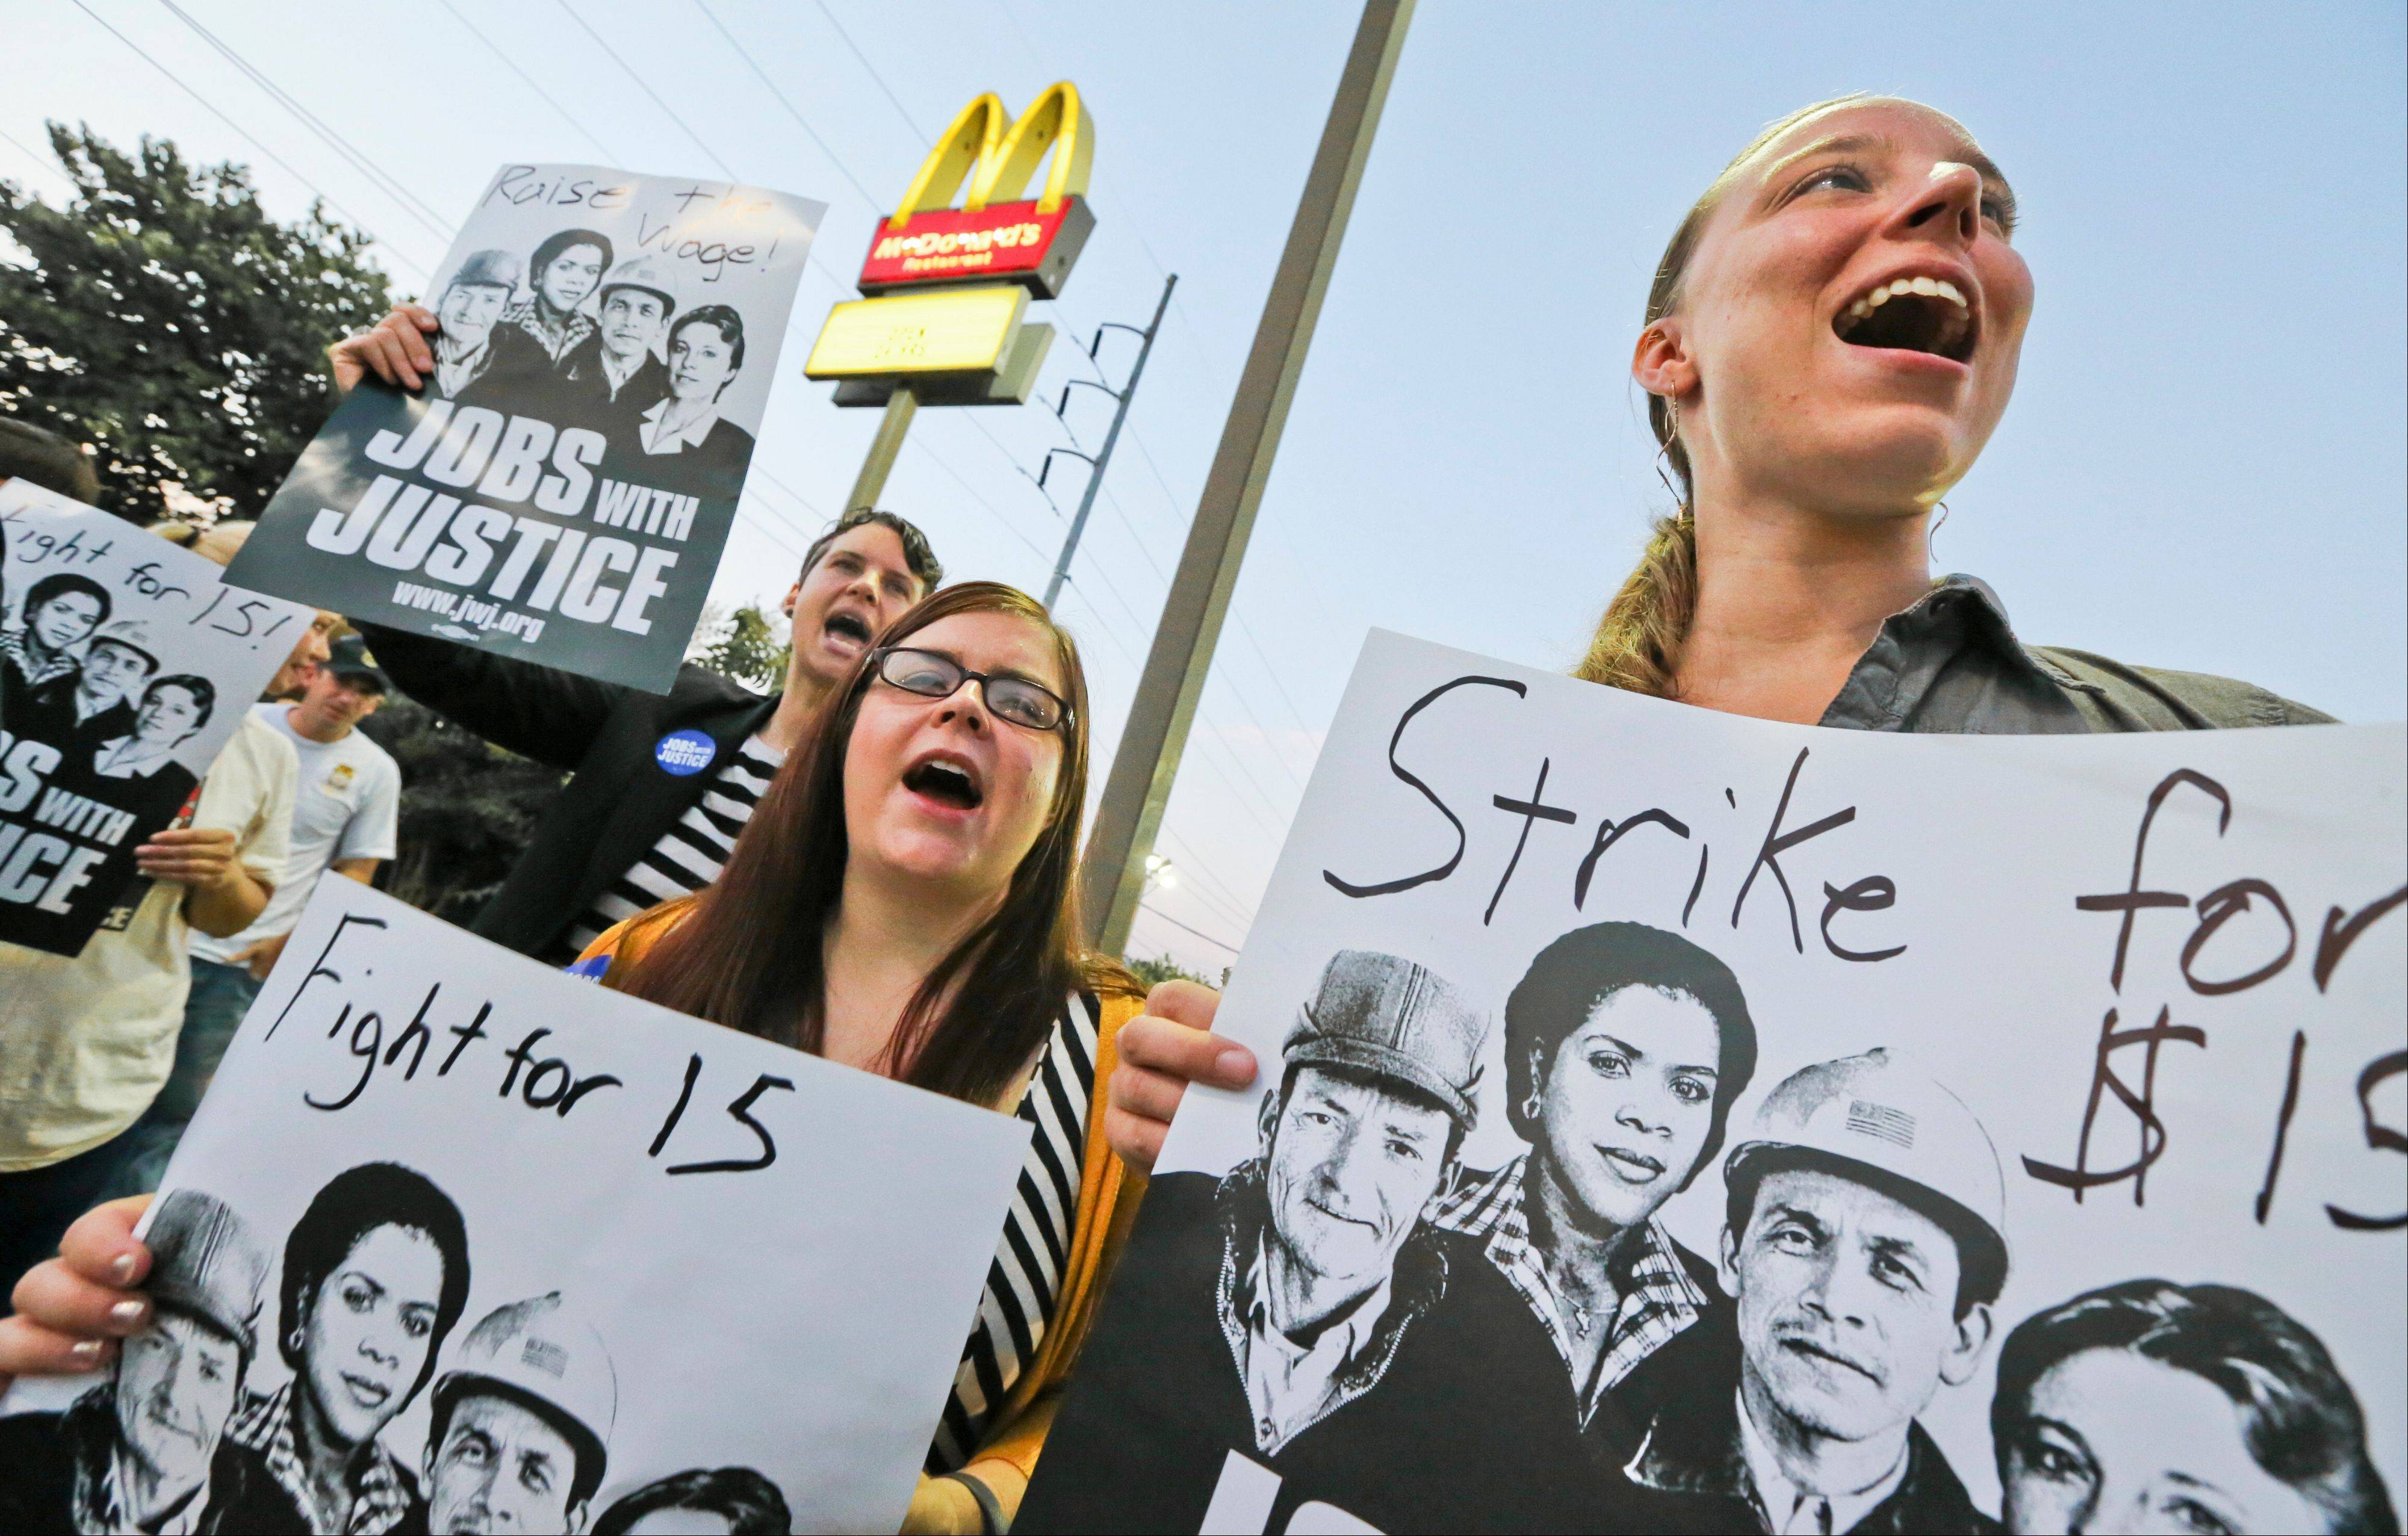 A protest takes place in front of a McDonald�s in Atlanta on Aug. 29. Thousands of fast-food workers and their supporters have been staging protests across the country to call attention to the struggles of living on or close to the federal minimum wage.